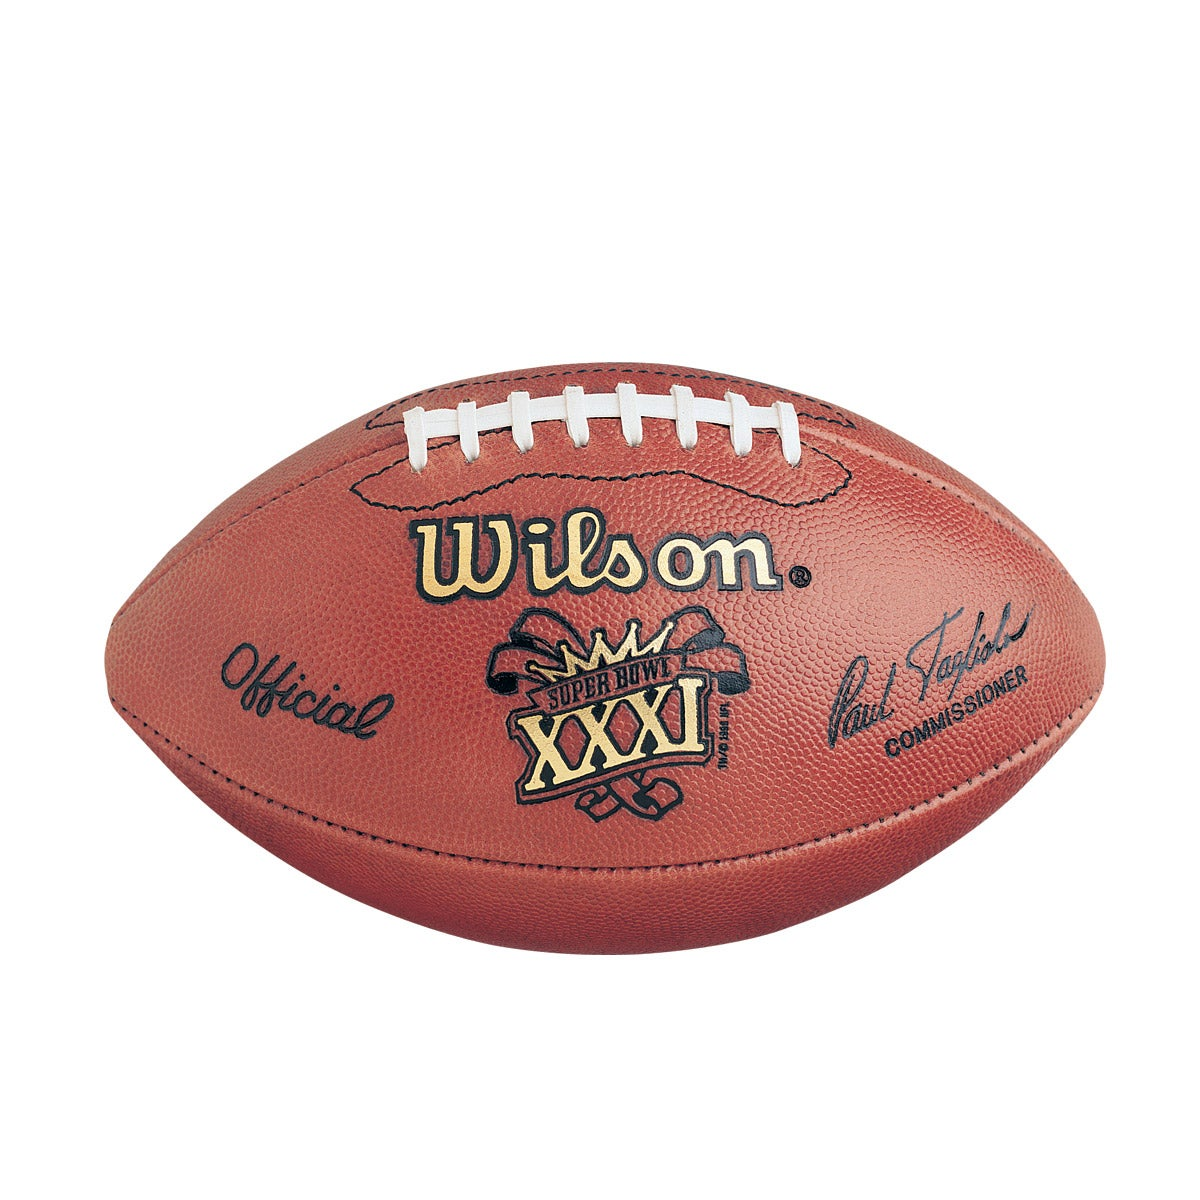 NFL Super Bowl XXXI Leather Game Football (Pro Pattern)